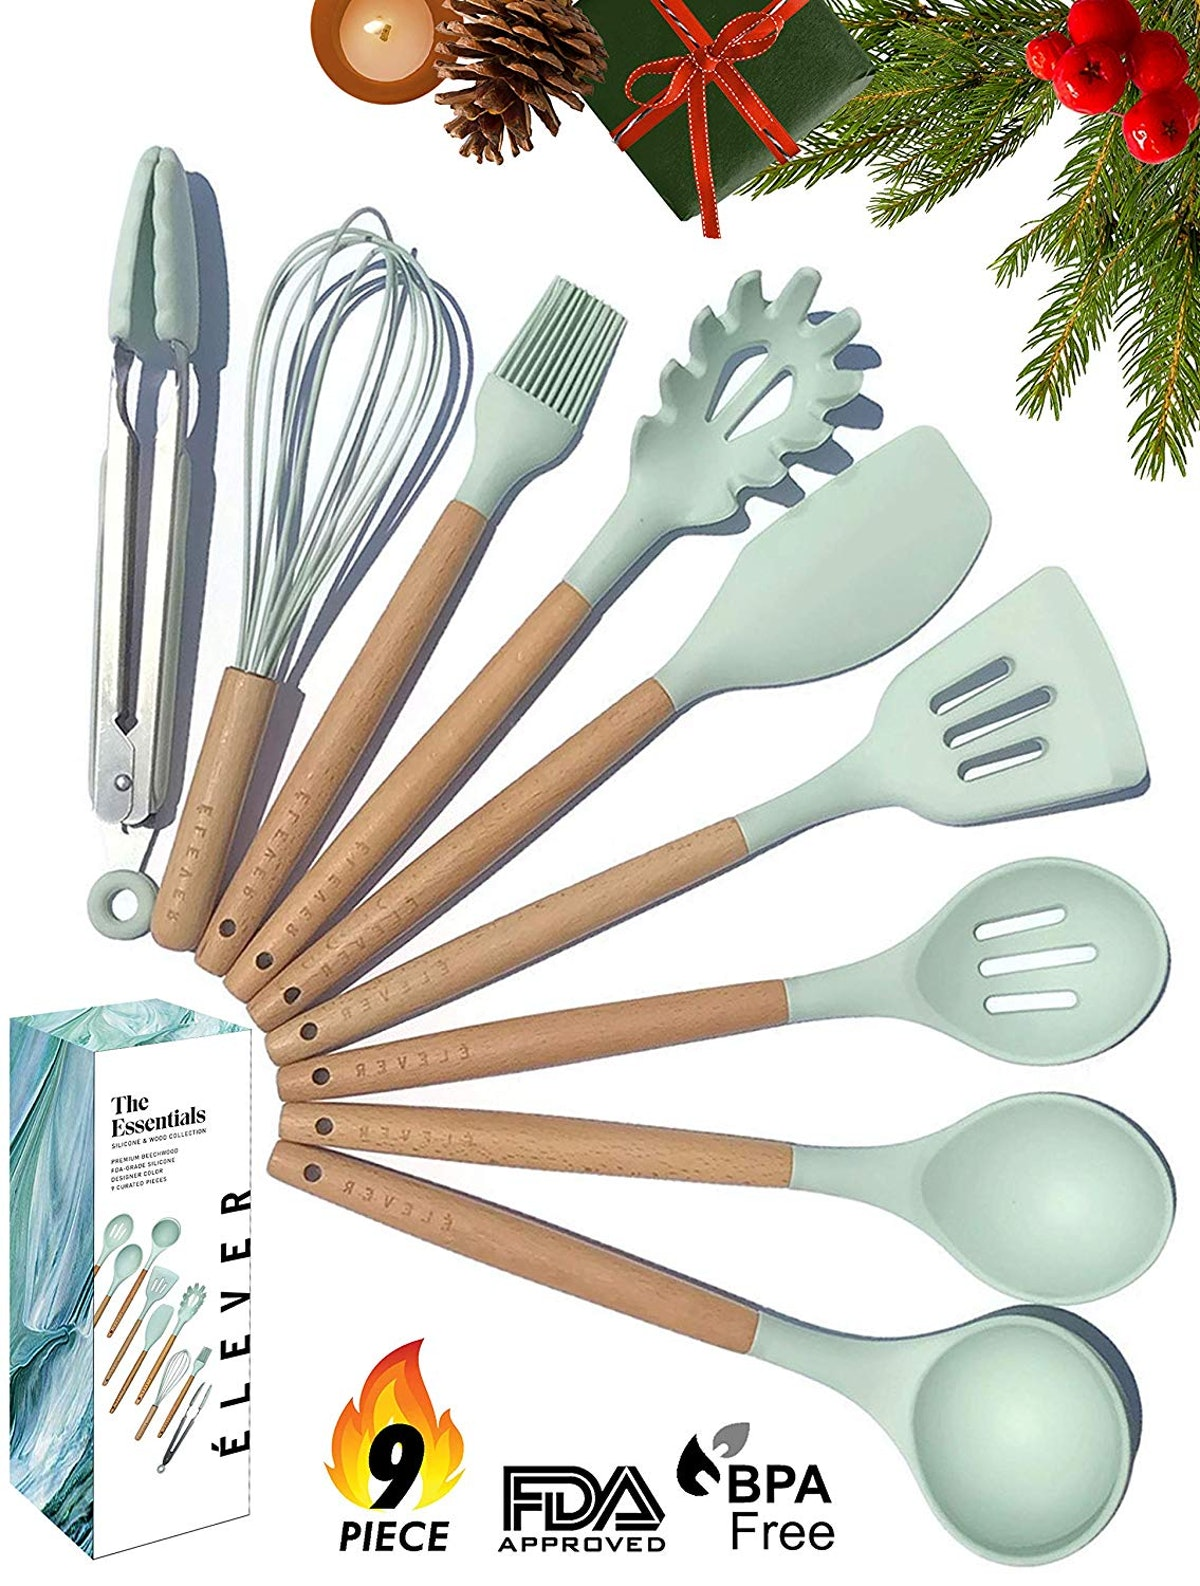 Silicone Cooking Utensils for Non-stick Cookware